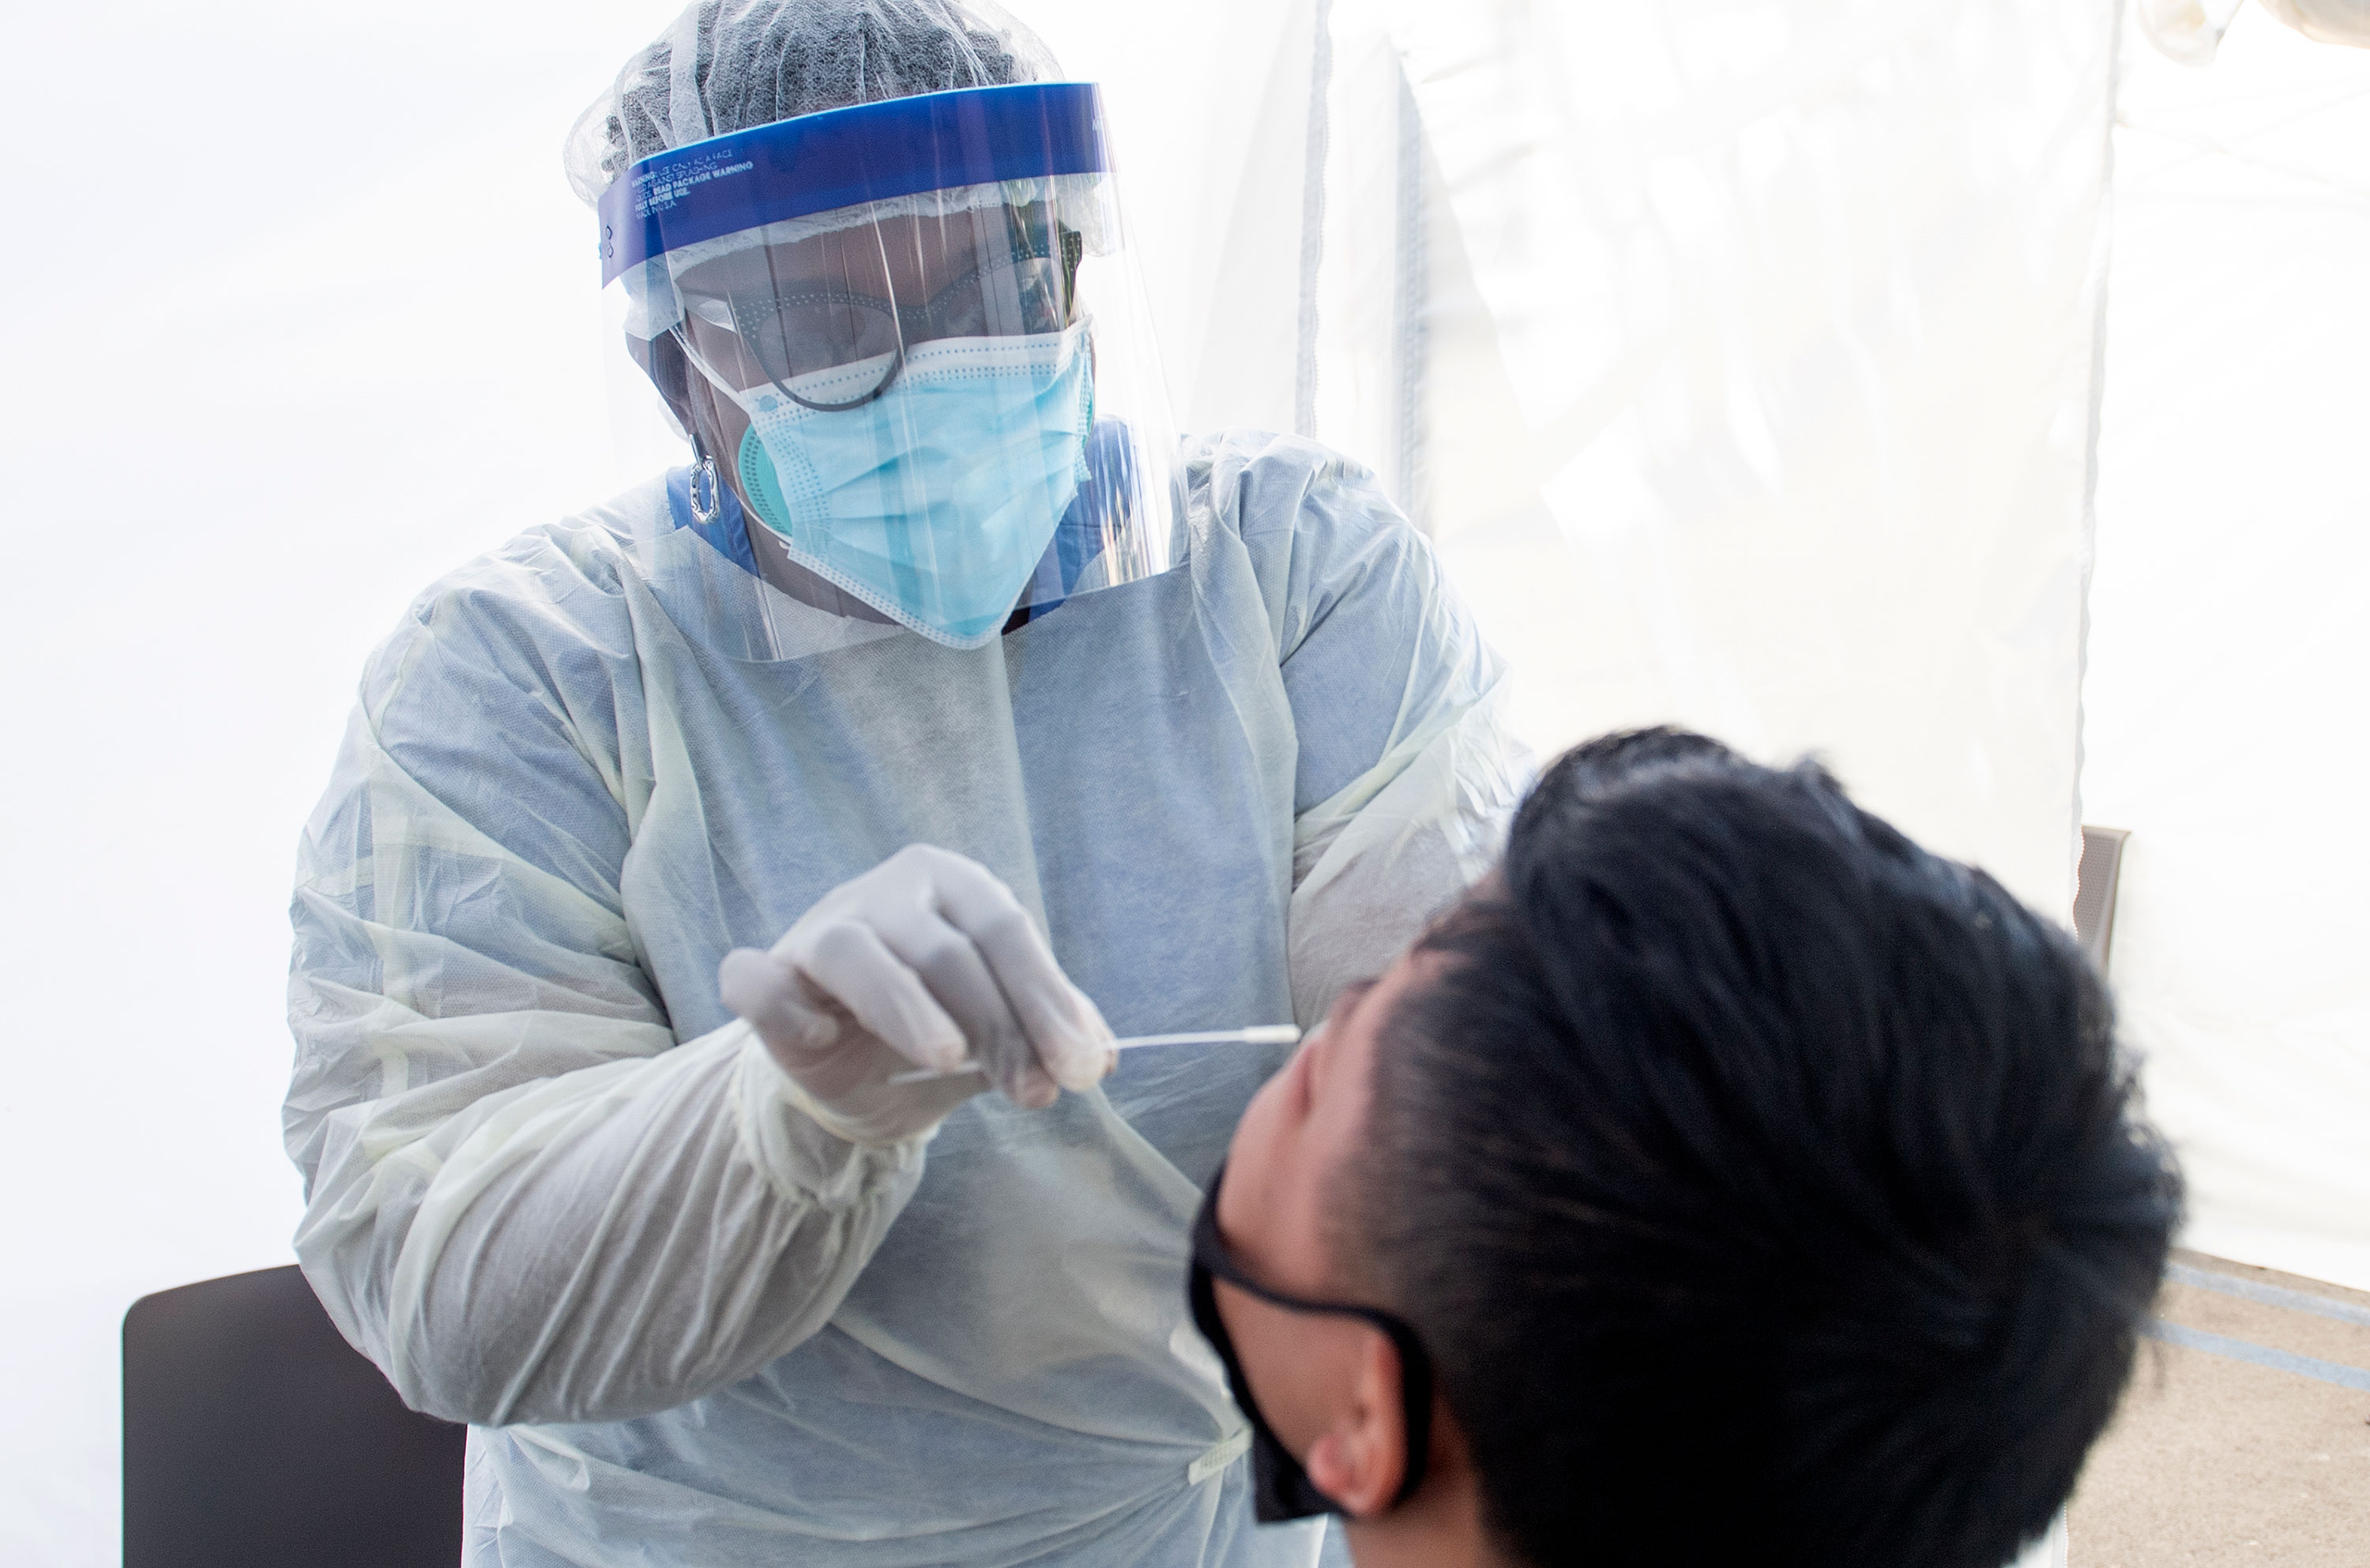 A health worker takes a nasal swab sample at a Covid-19 testing site on July 24 in Los Angeles, California.